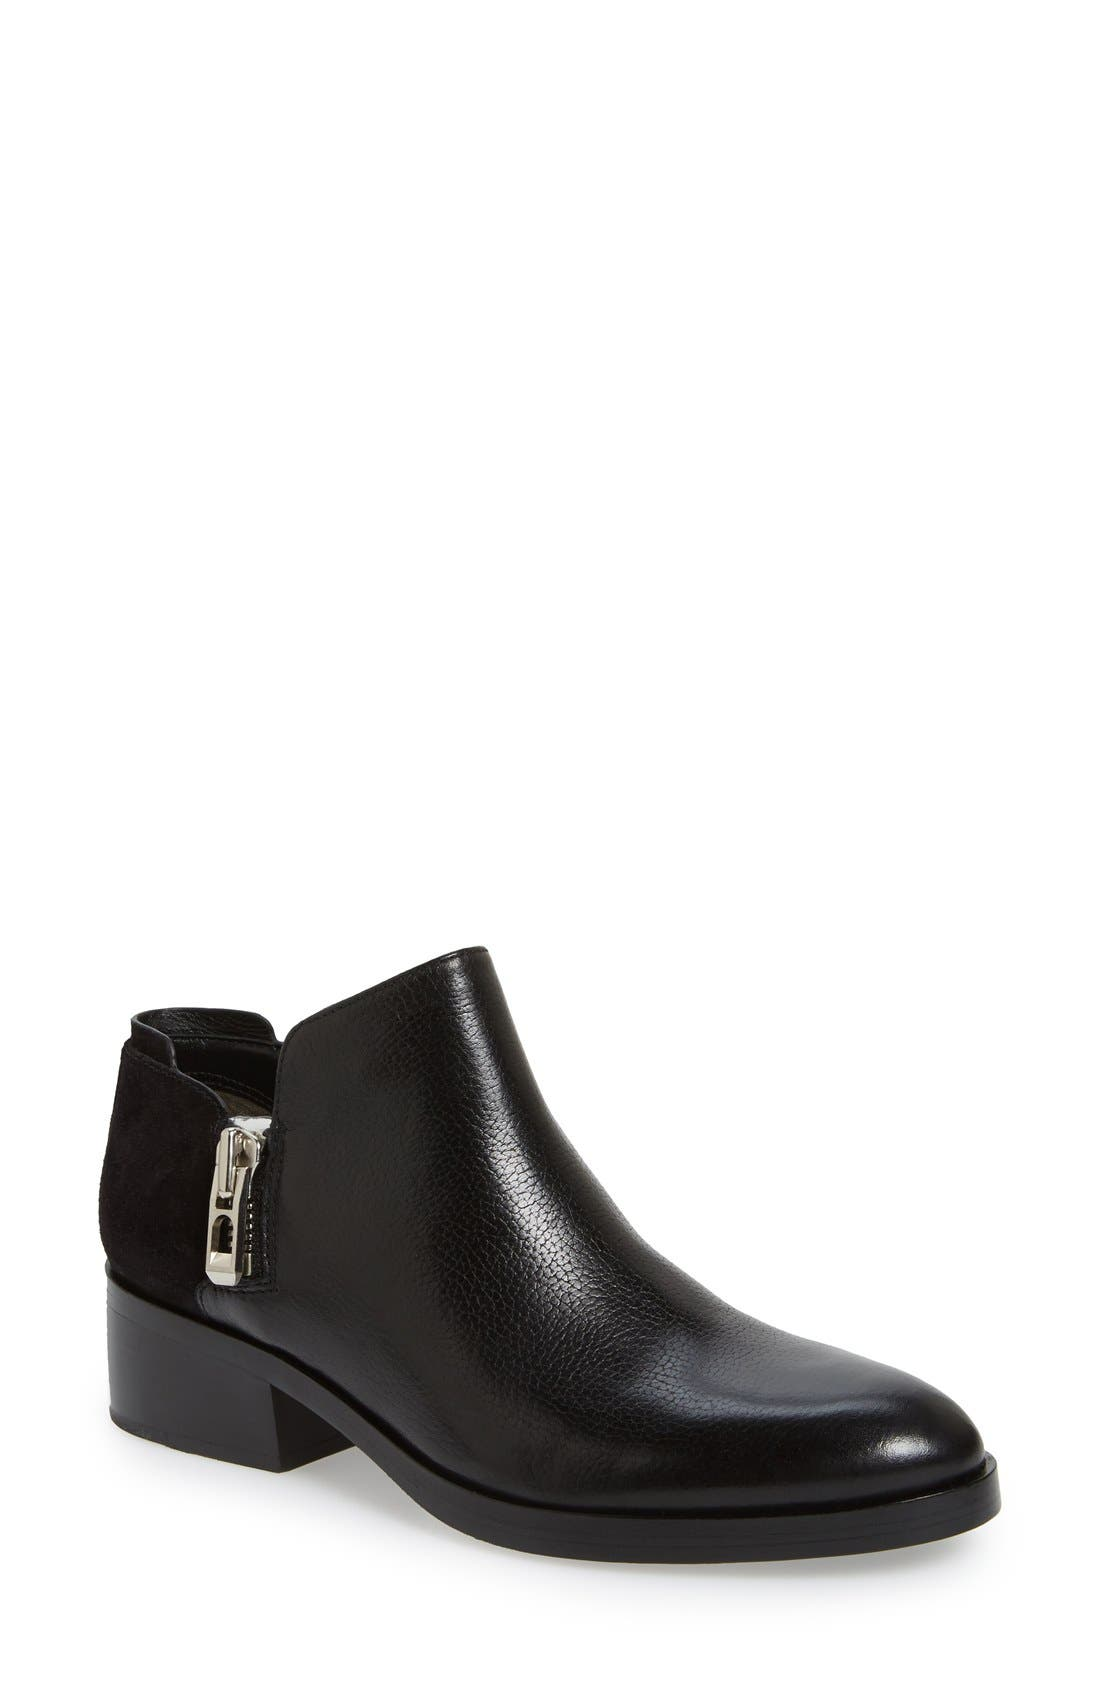 Main Image - 3.1 Phillip Lim Alexa Zip Ankle Bootie (Women)